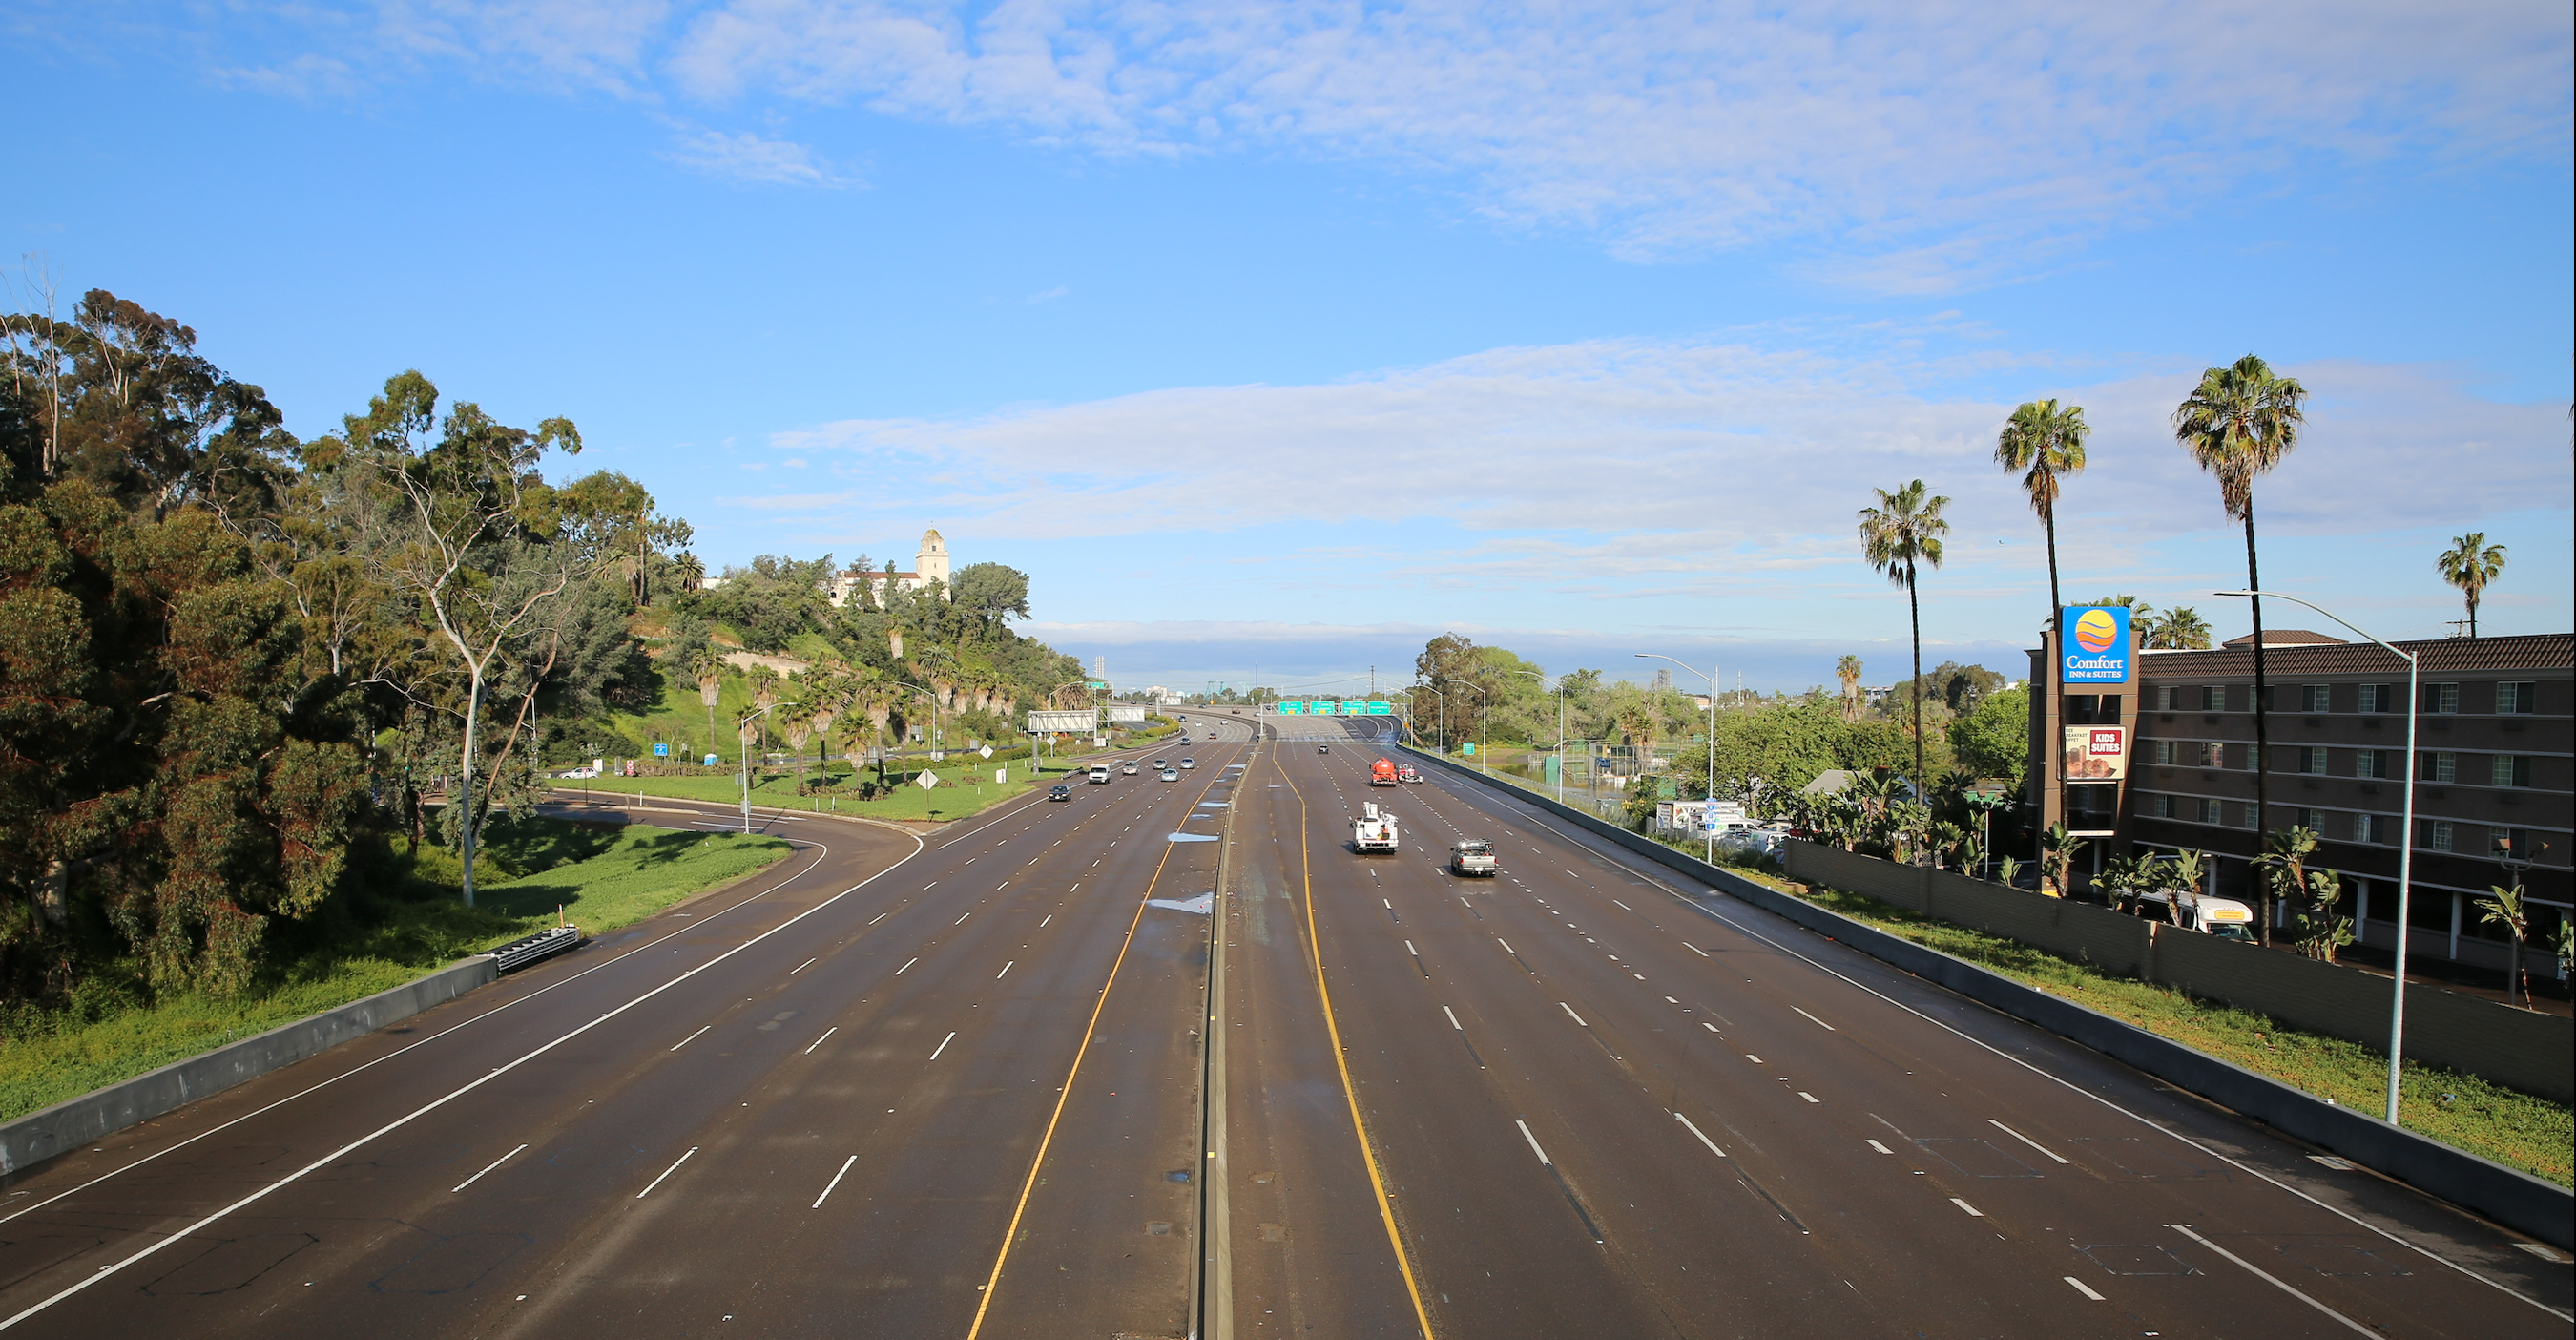 Light traffic in San Diego County, April 11, 2020 (Photo credit: Reuben Herzl)